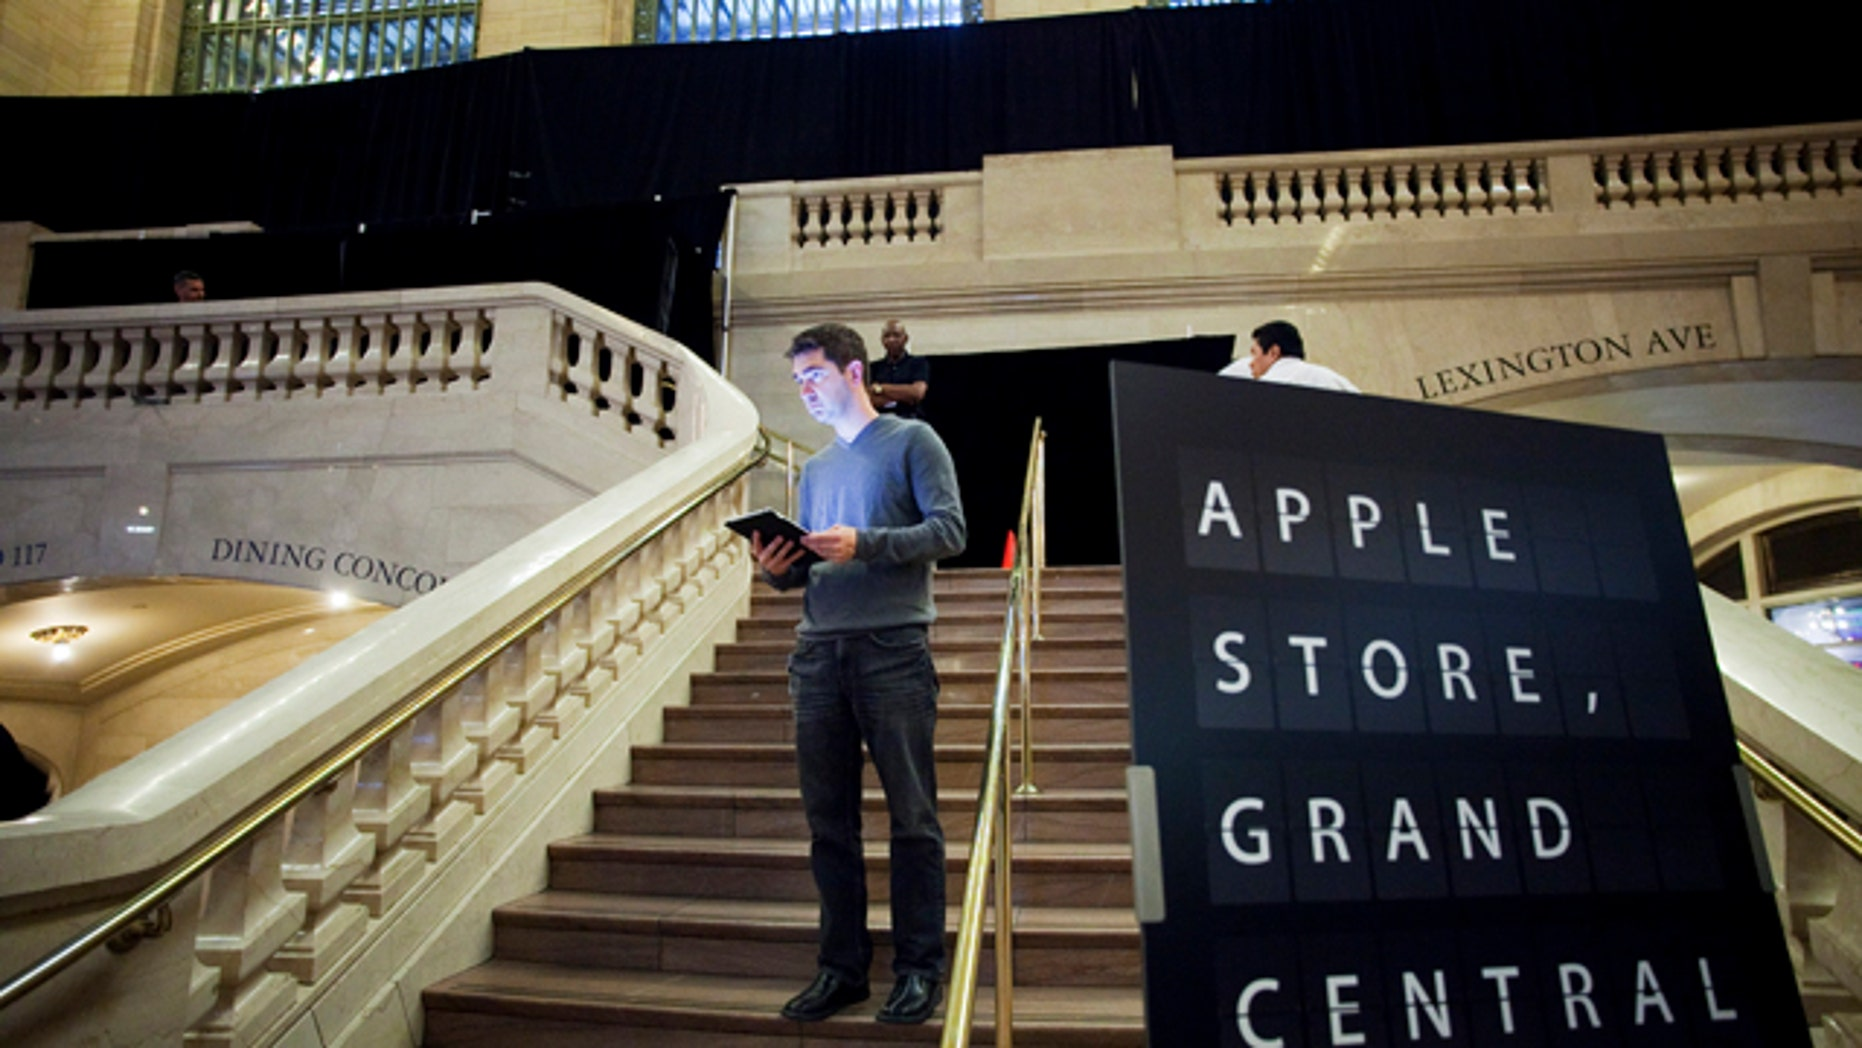 Dec. 6, 2011: Black curtains obscure the Apple Store in Grand Central Terminal in New York a day before the store's grand opening Friday, Dec. 9.